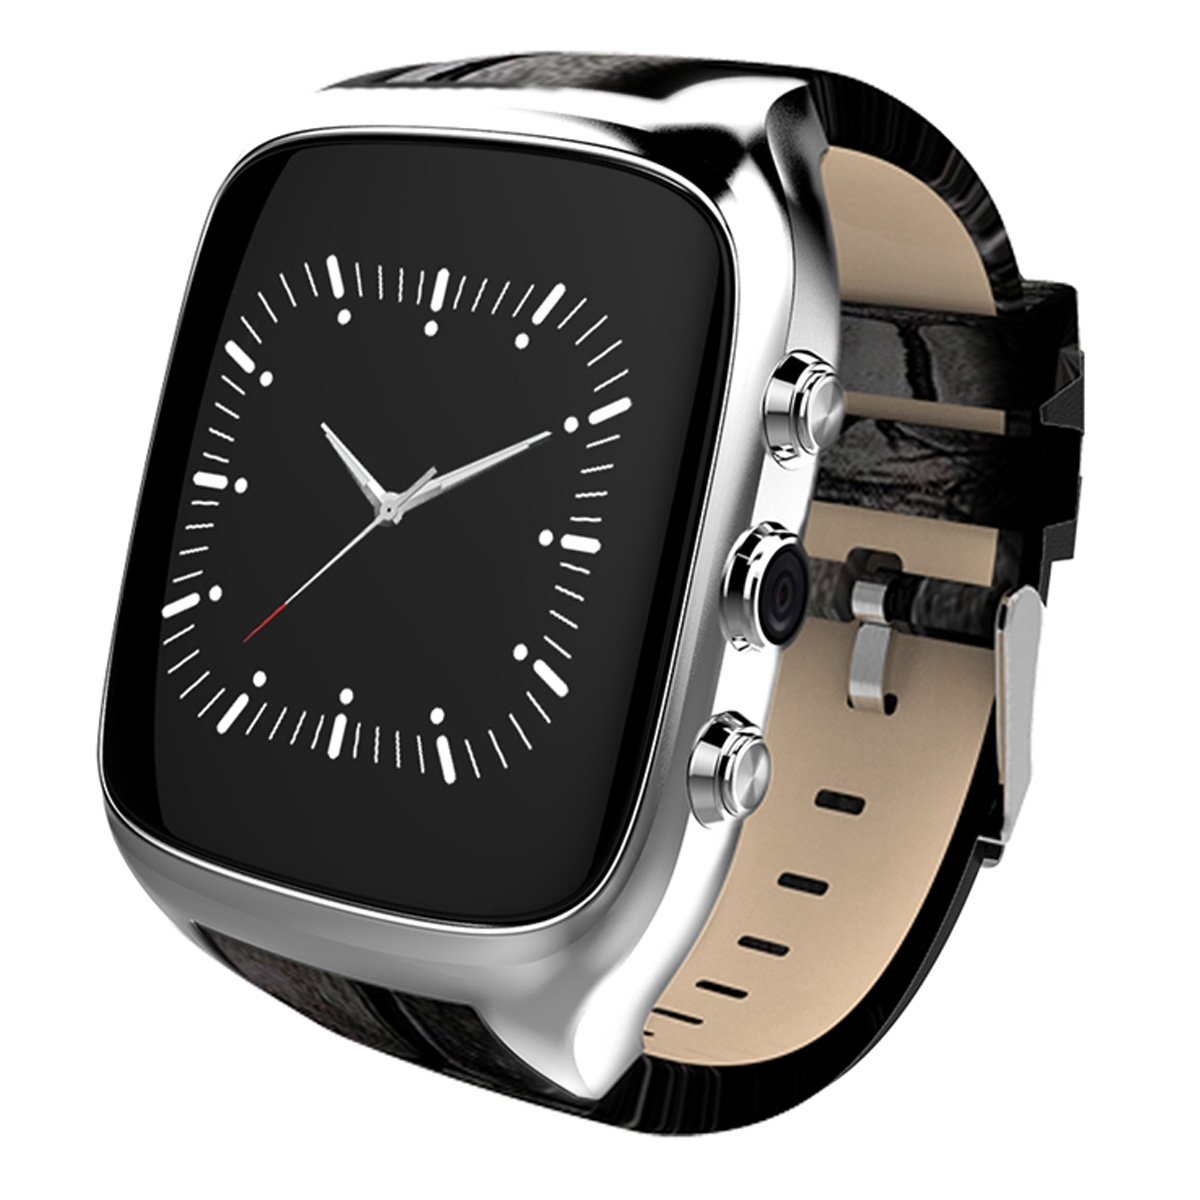 Waterproof Smart Watch Android 5.1 Mobile Phone MTK6580 with GPS - Silver